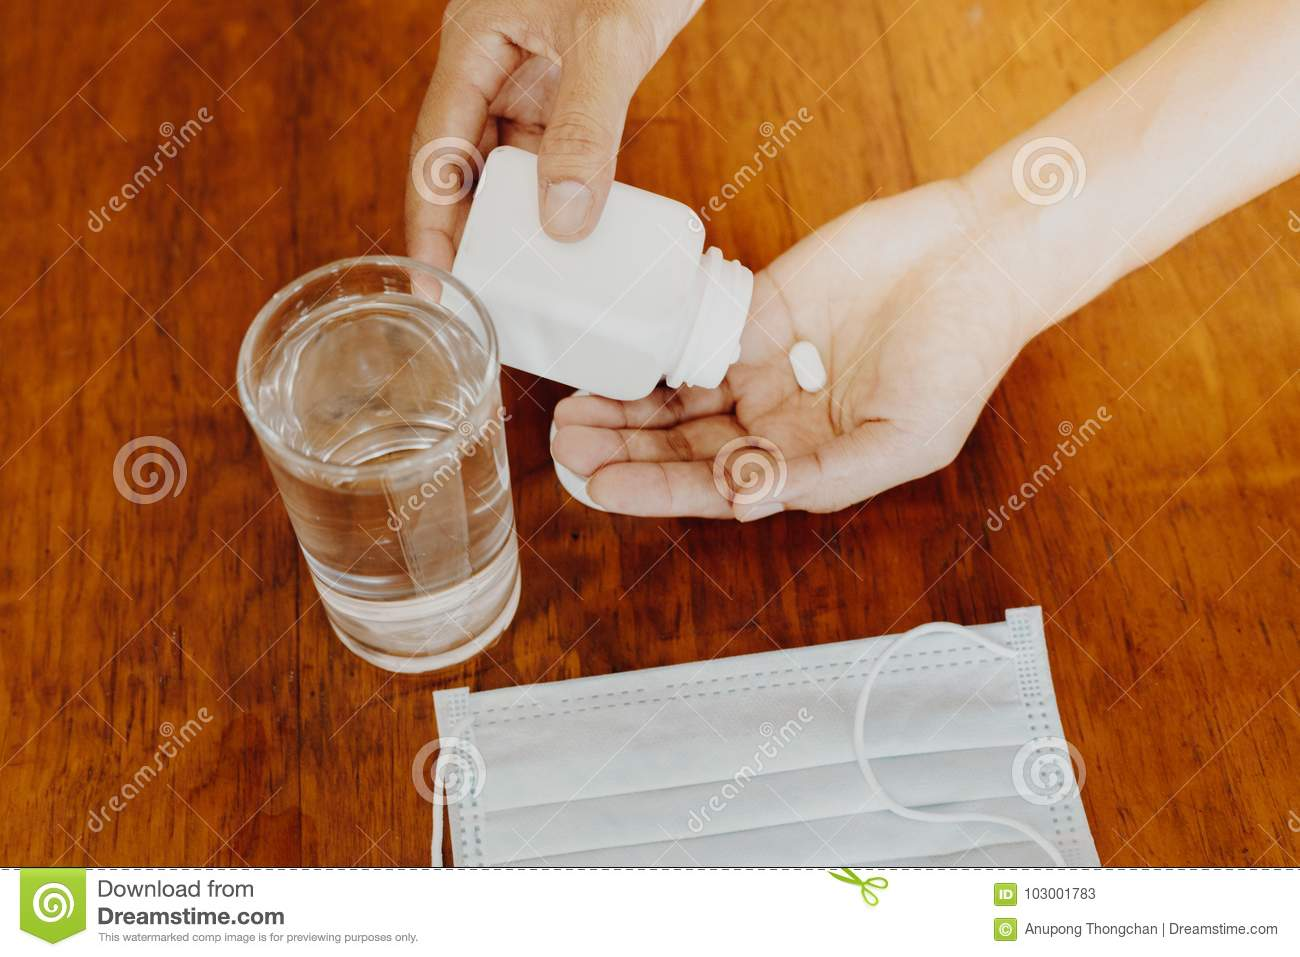 He girl holds the medicine in her hand with a glass of water Protective mask on a wooden table